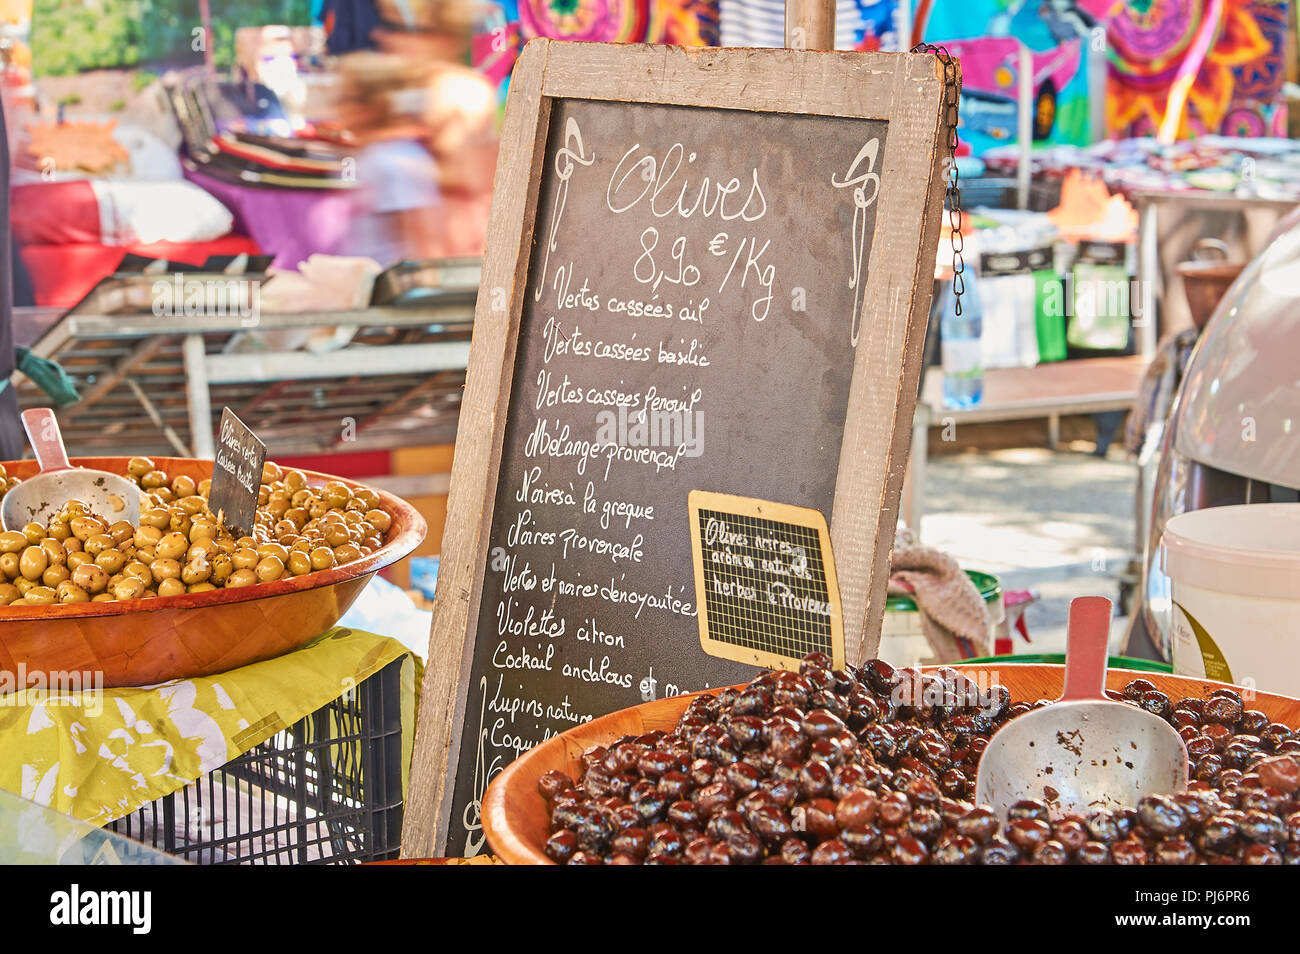 Market stall selling olives in the Ardeche town of Lamstre Stock Photo